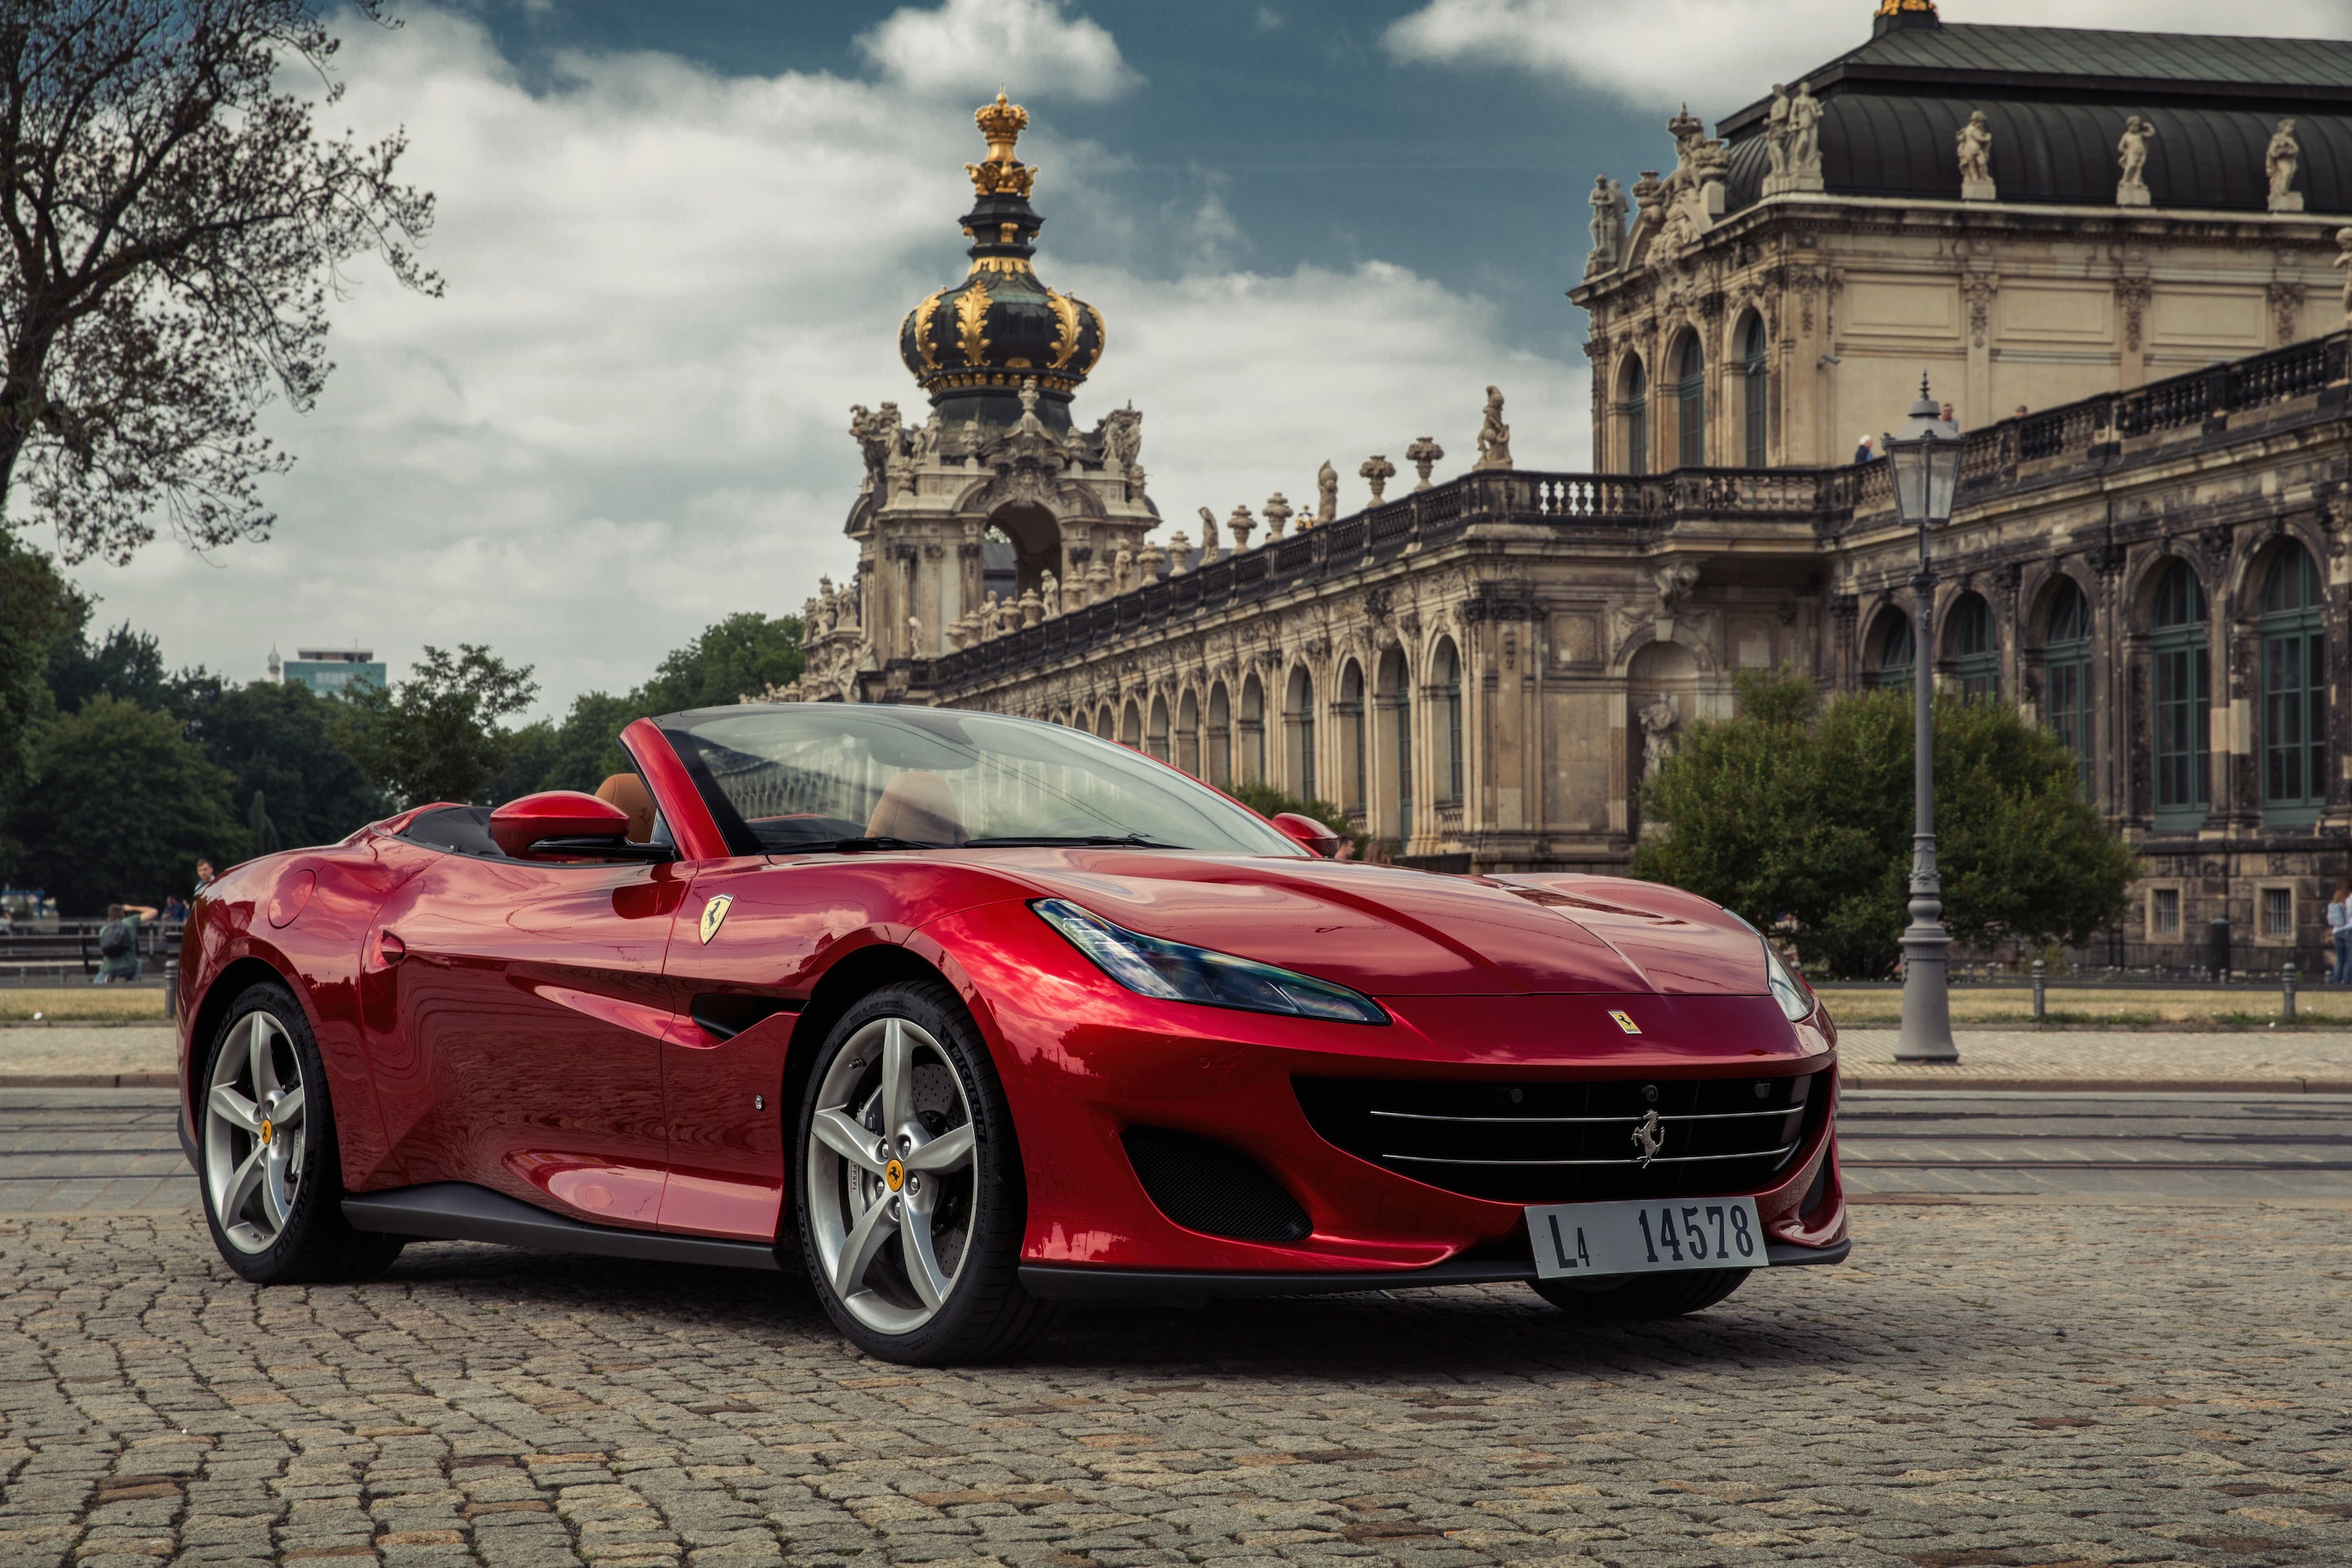 A metallic red Ferrari Portofino, a convertible luxury sports car, shown with the top down.